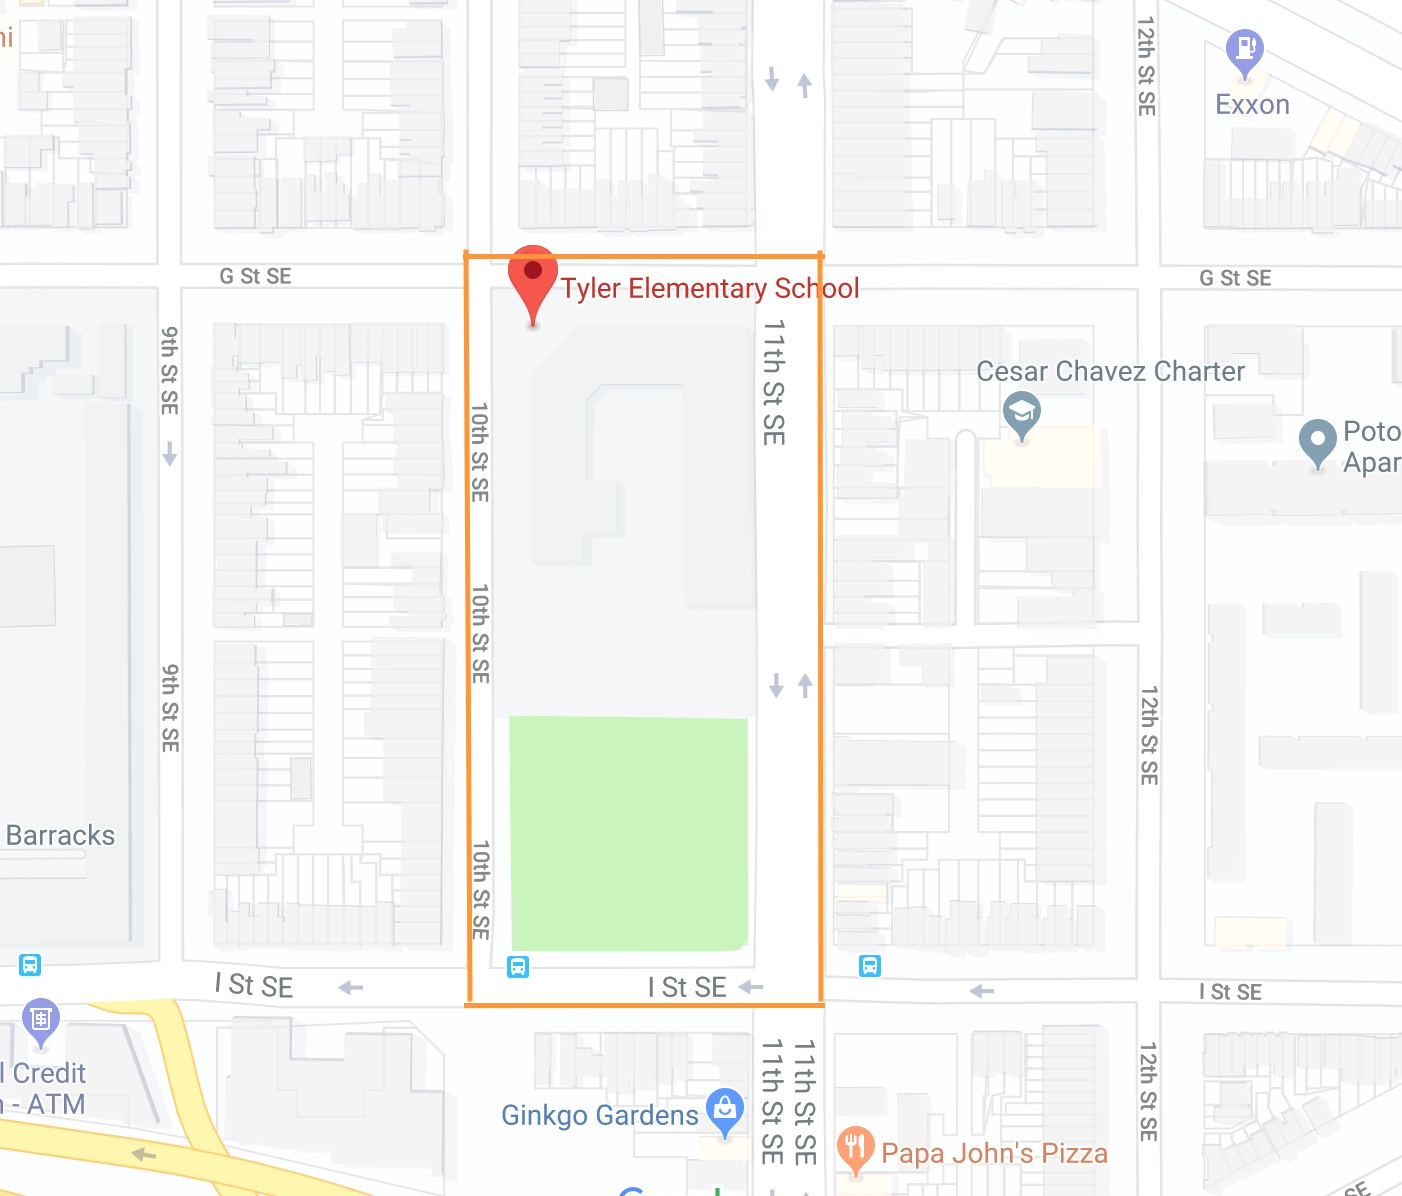 DC Way is adopting the following four blocks surrounding Tyler Elementary School: - 1. 1000 block of G St SE2. 1000 block of I St SE3. 700 block of 10th St SE4. 700 block of 11th St SEStarting Meeting Location will be at the address below: